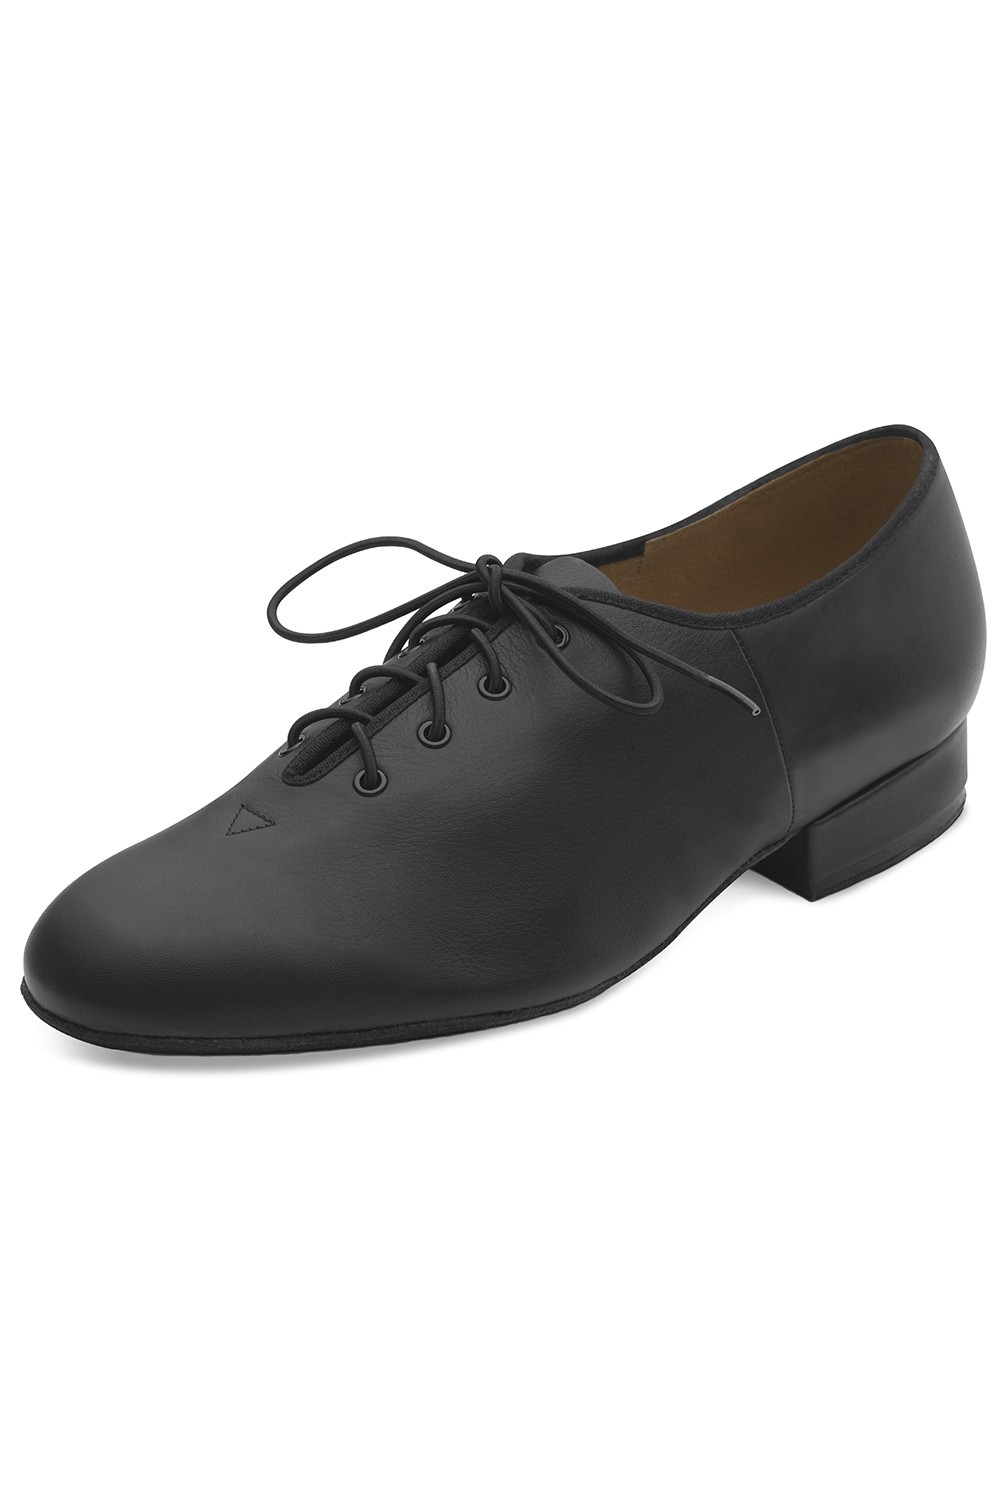 Jazz Oxford Suede Men's Tap Shoes